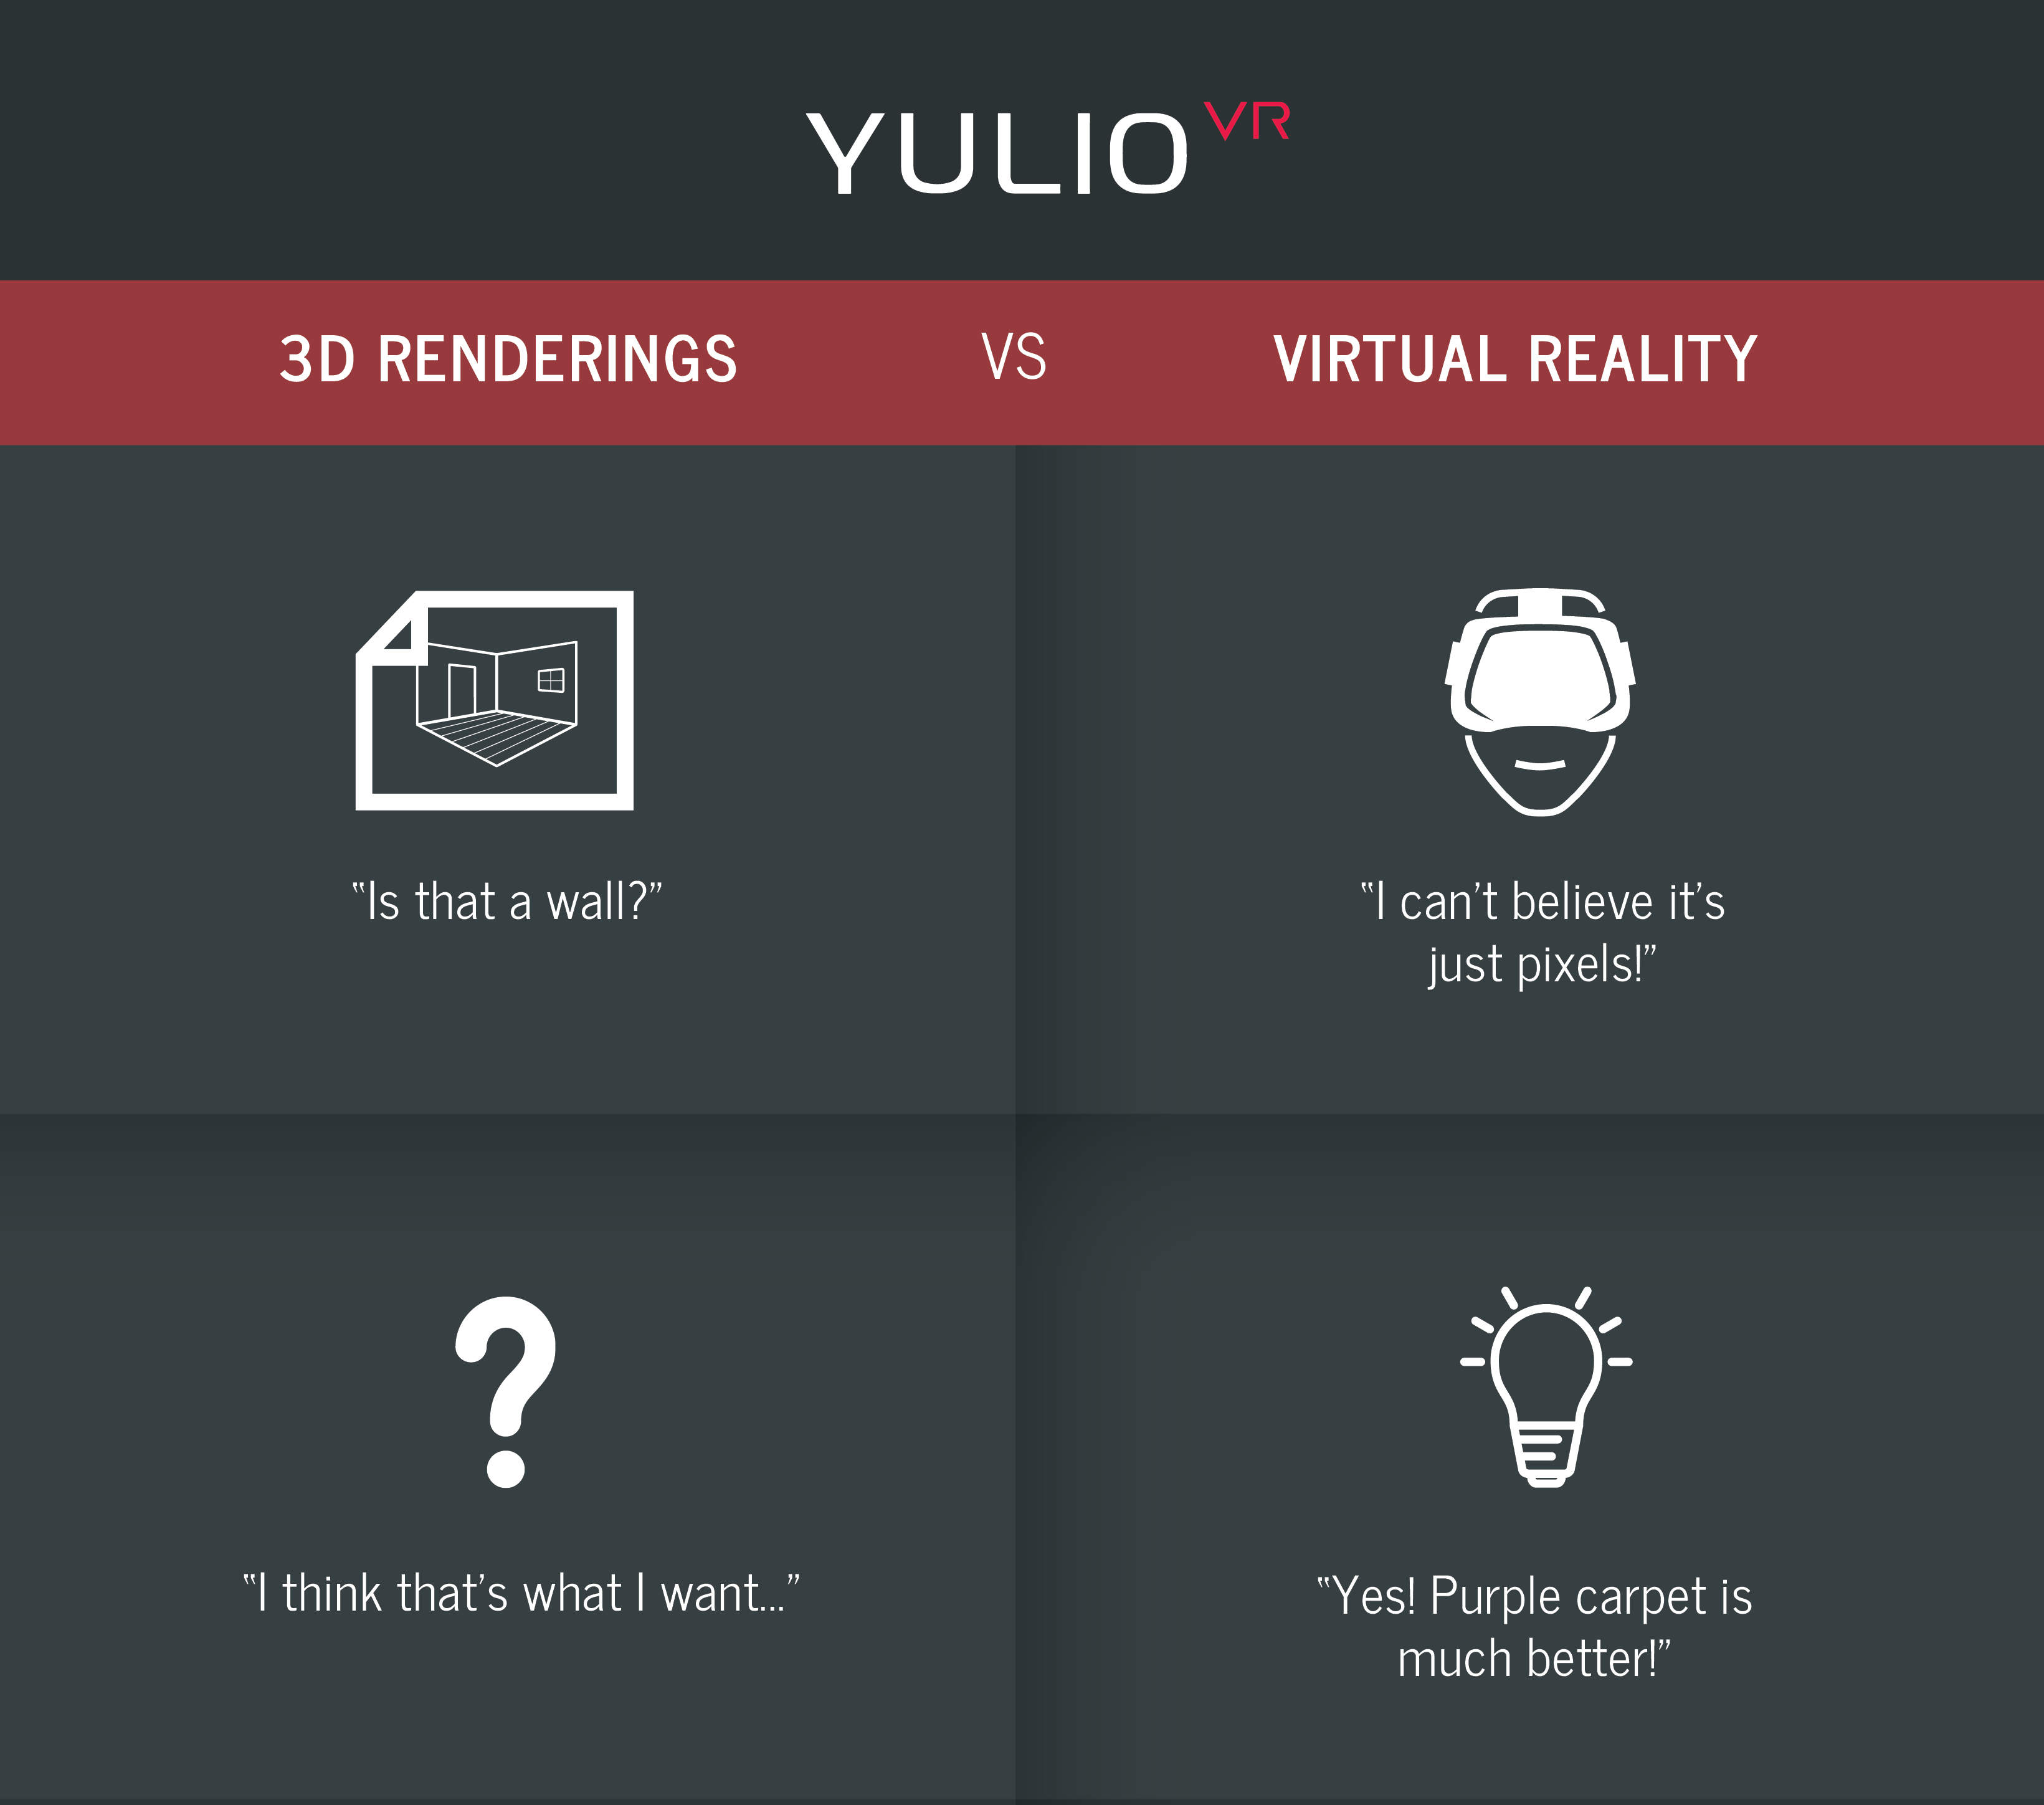 Infographic: 3D Renderings vs. Virtual Reality